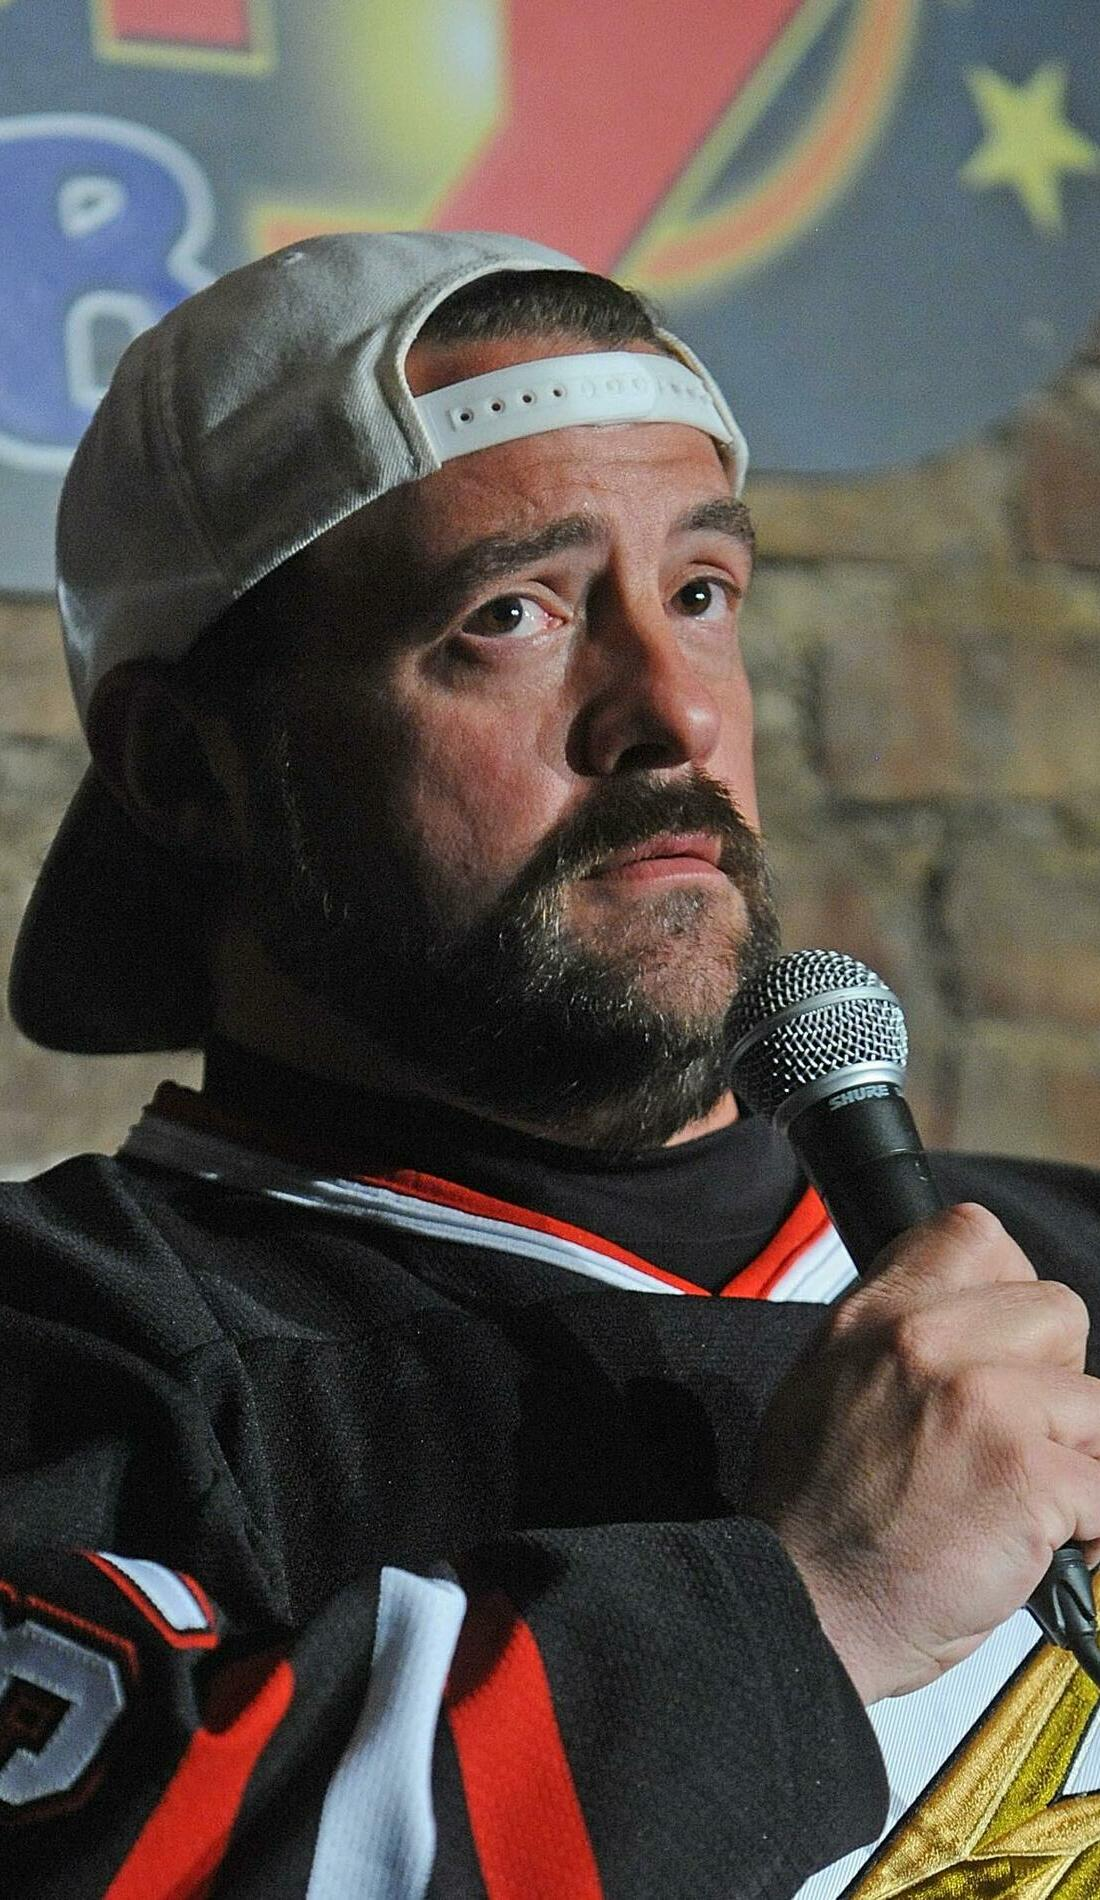 A Kevin Smith live event